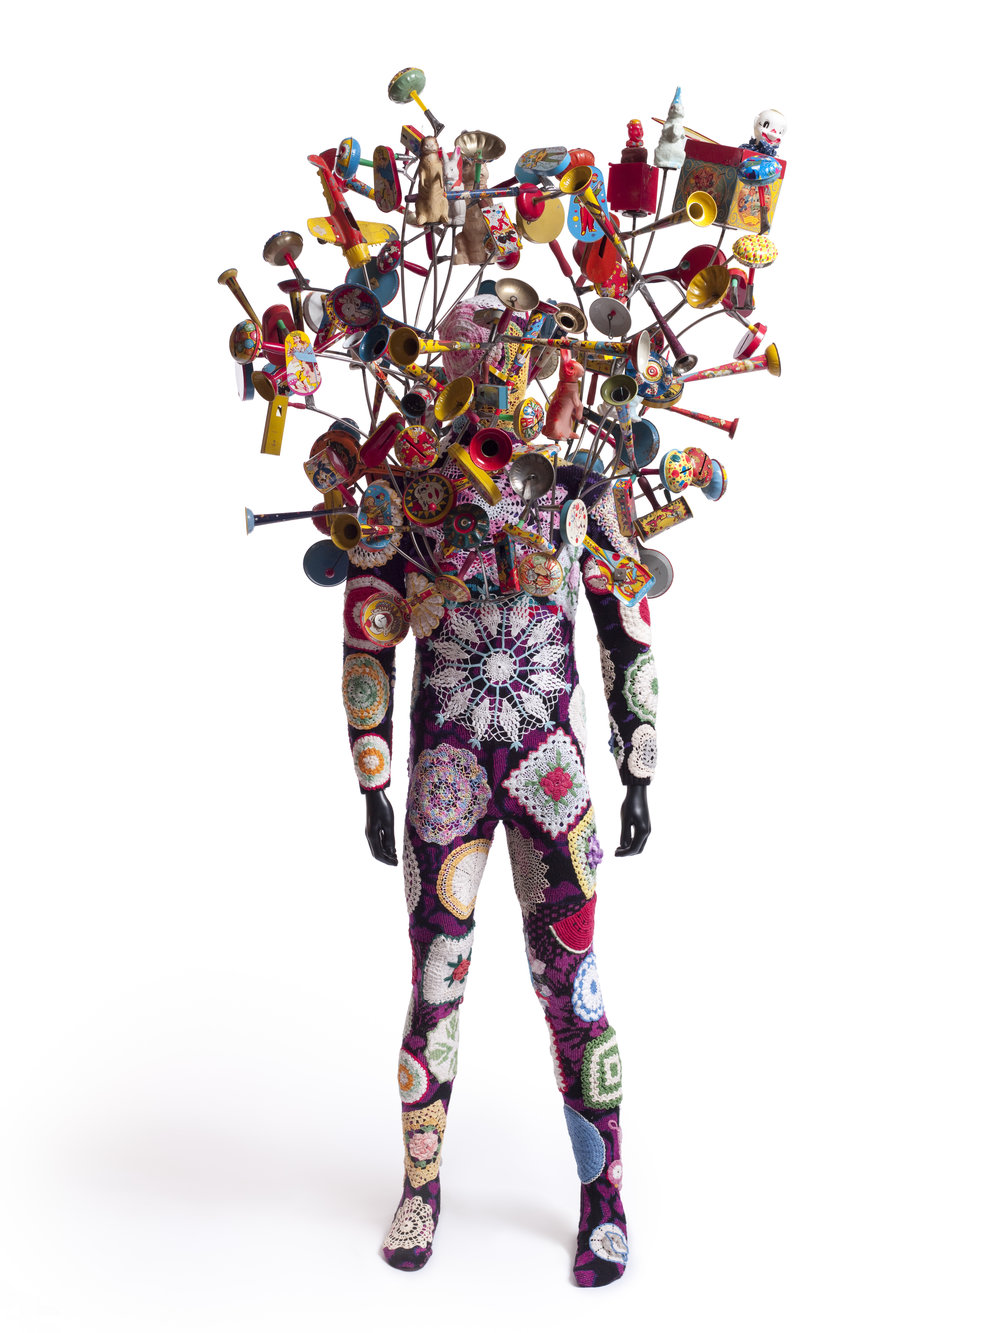 Nick Cave, (b. 1959), Soundsuit, 2010, Mixed media, 92 x 43 x48 in